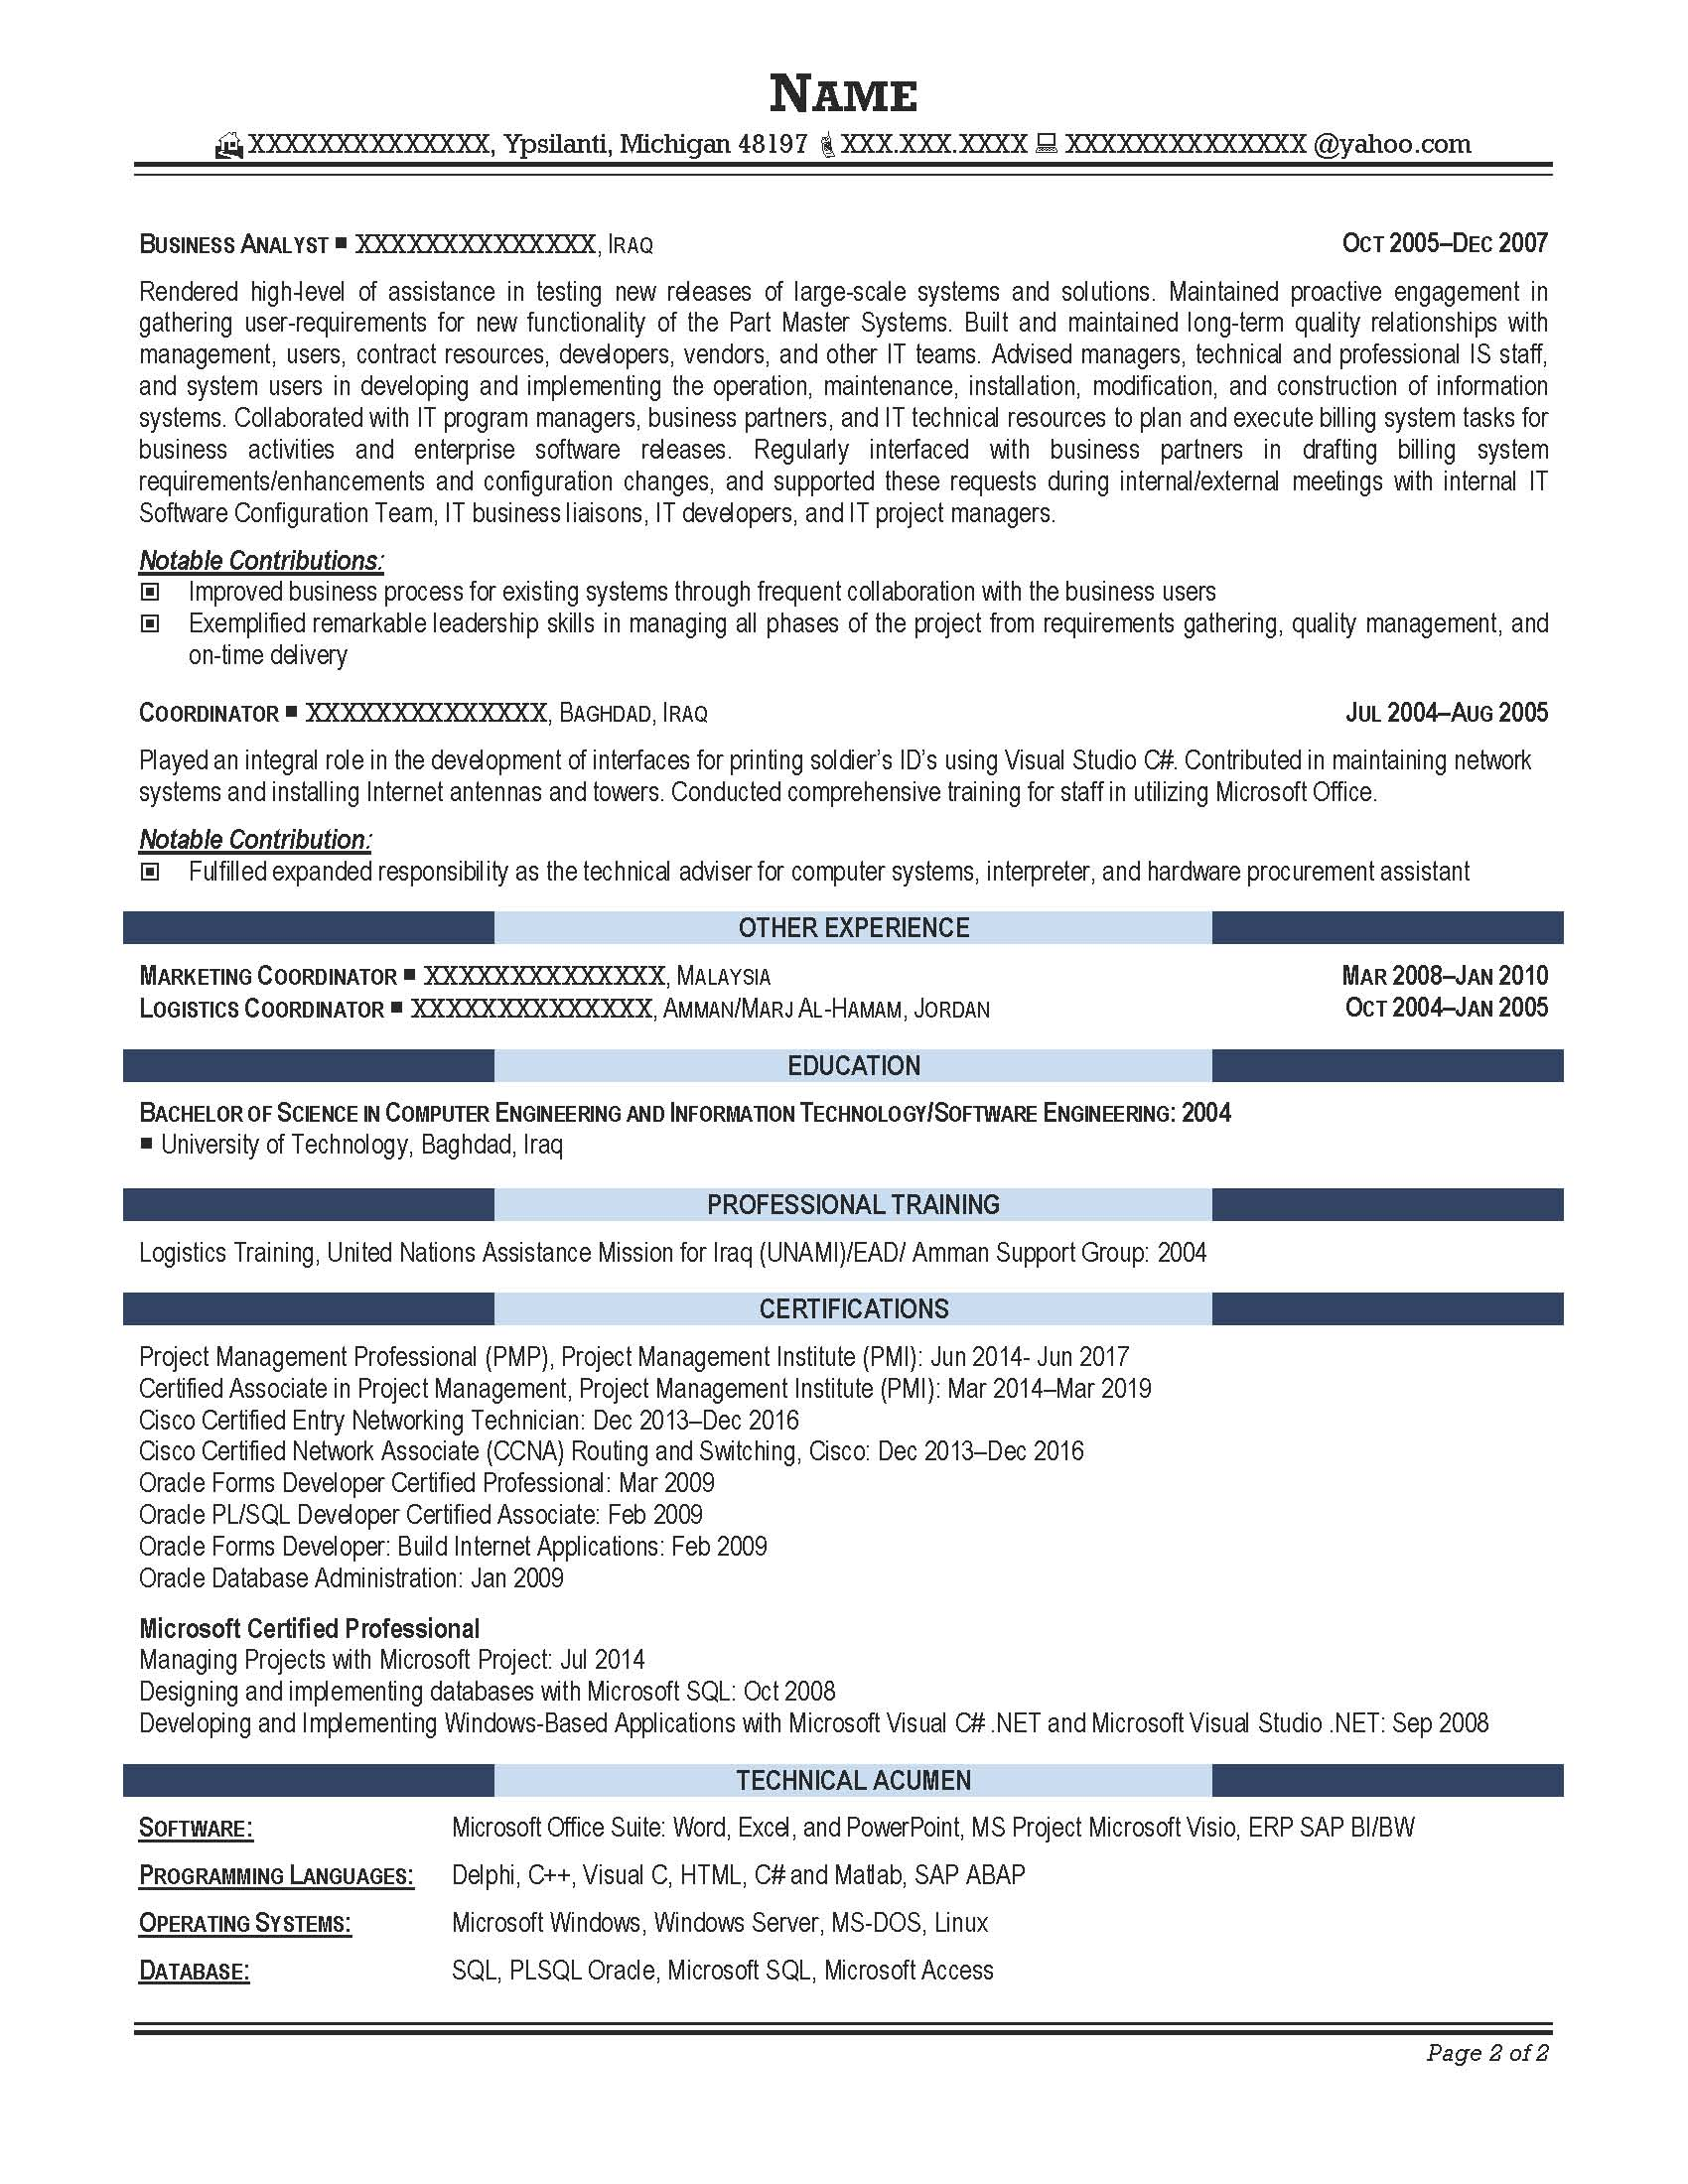 Catastrophe Analyst Resume  Data Analysis Resume